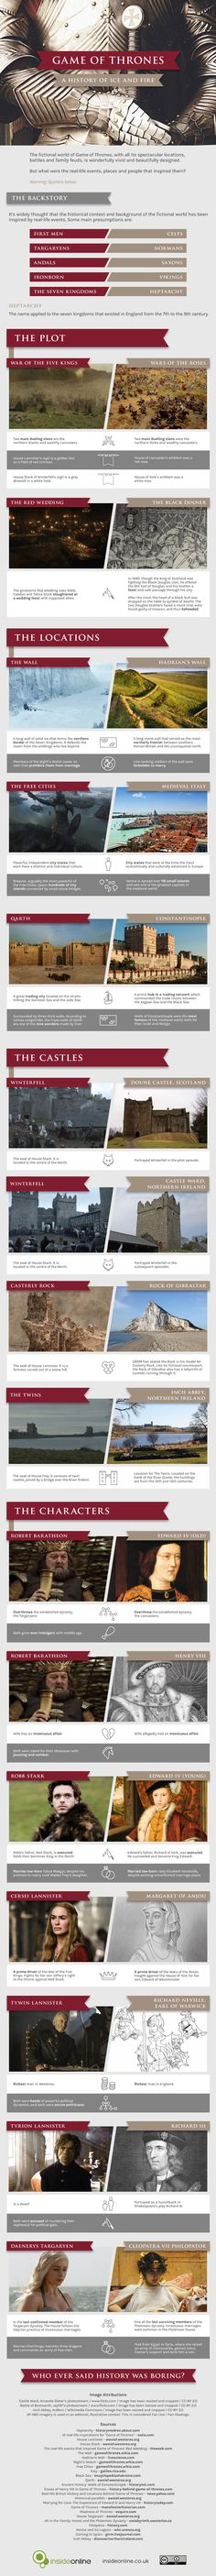 Game of Thrones History Infographic. Topic: television series, tv show, castle, medieval, king